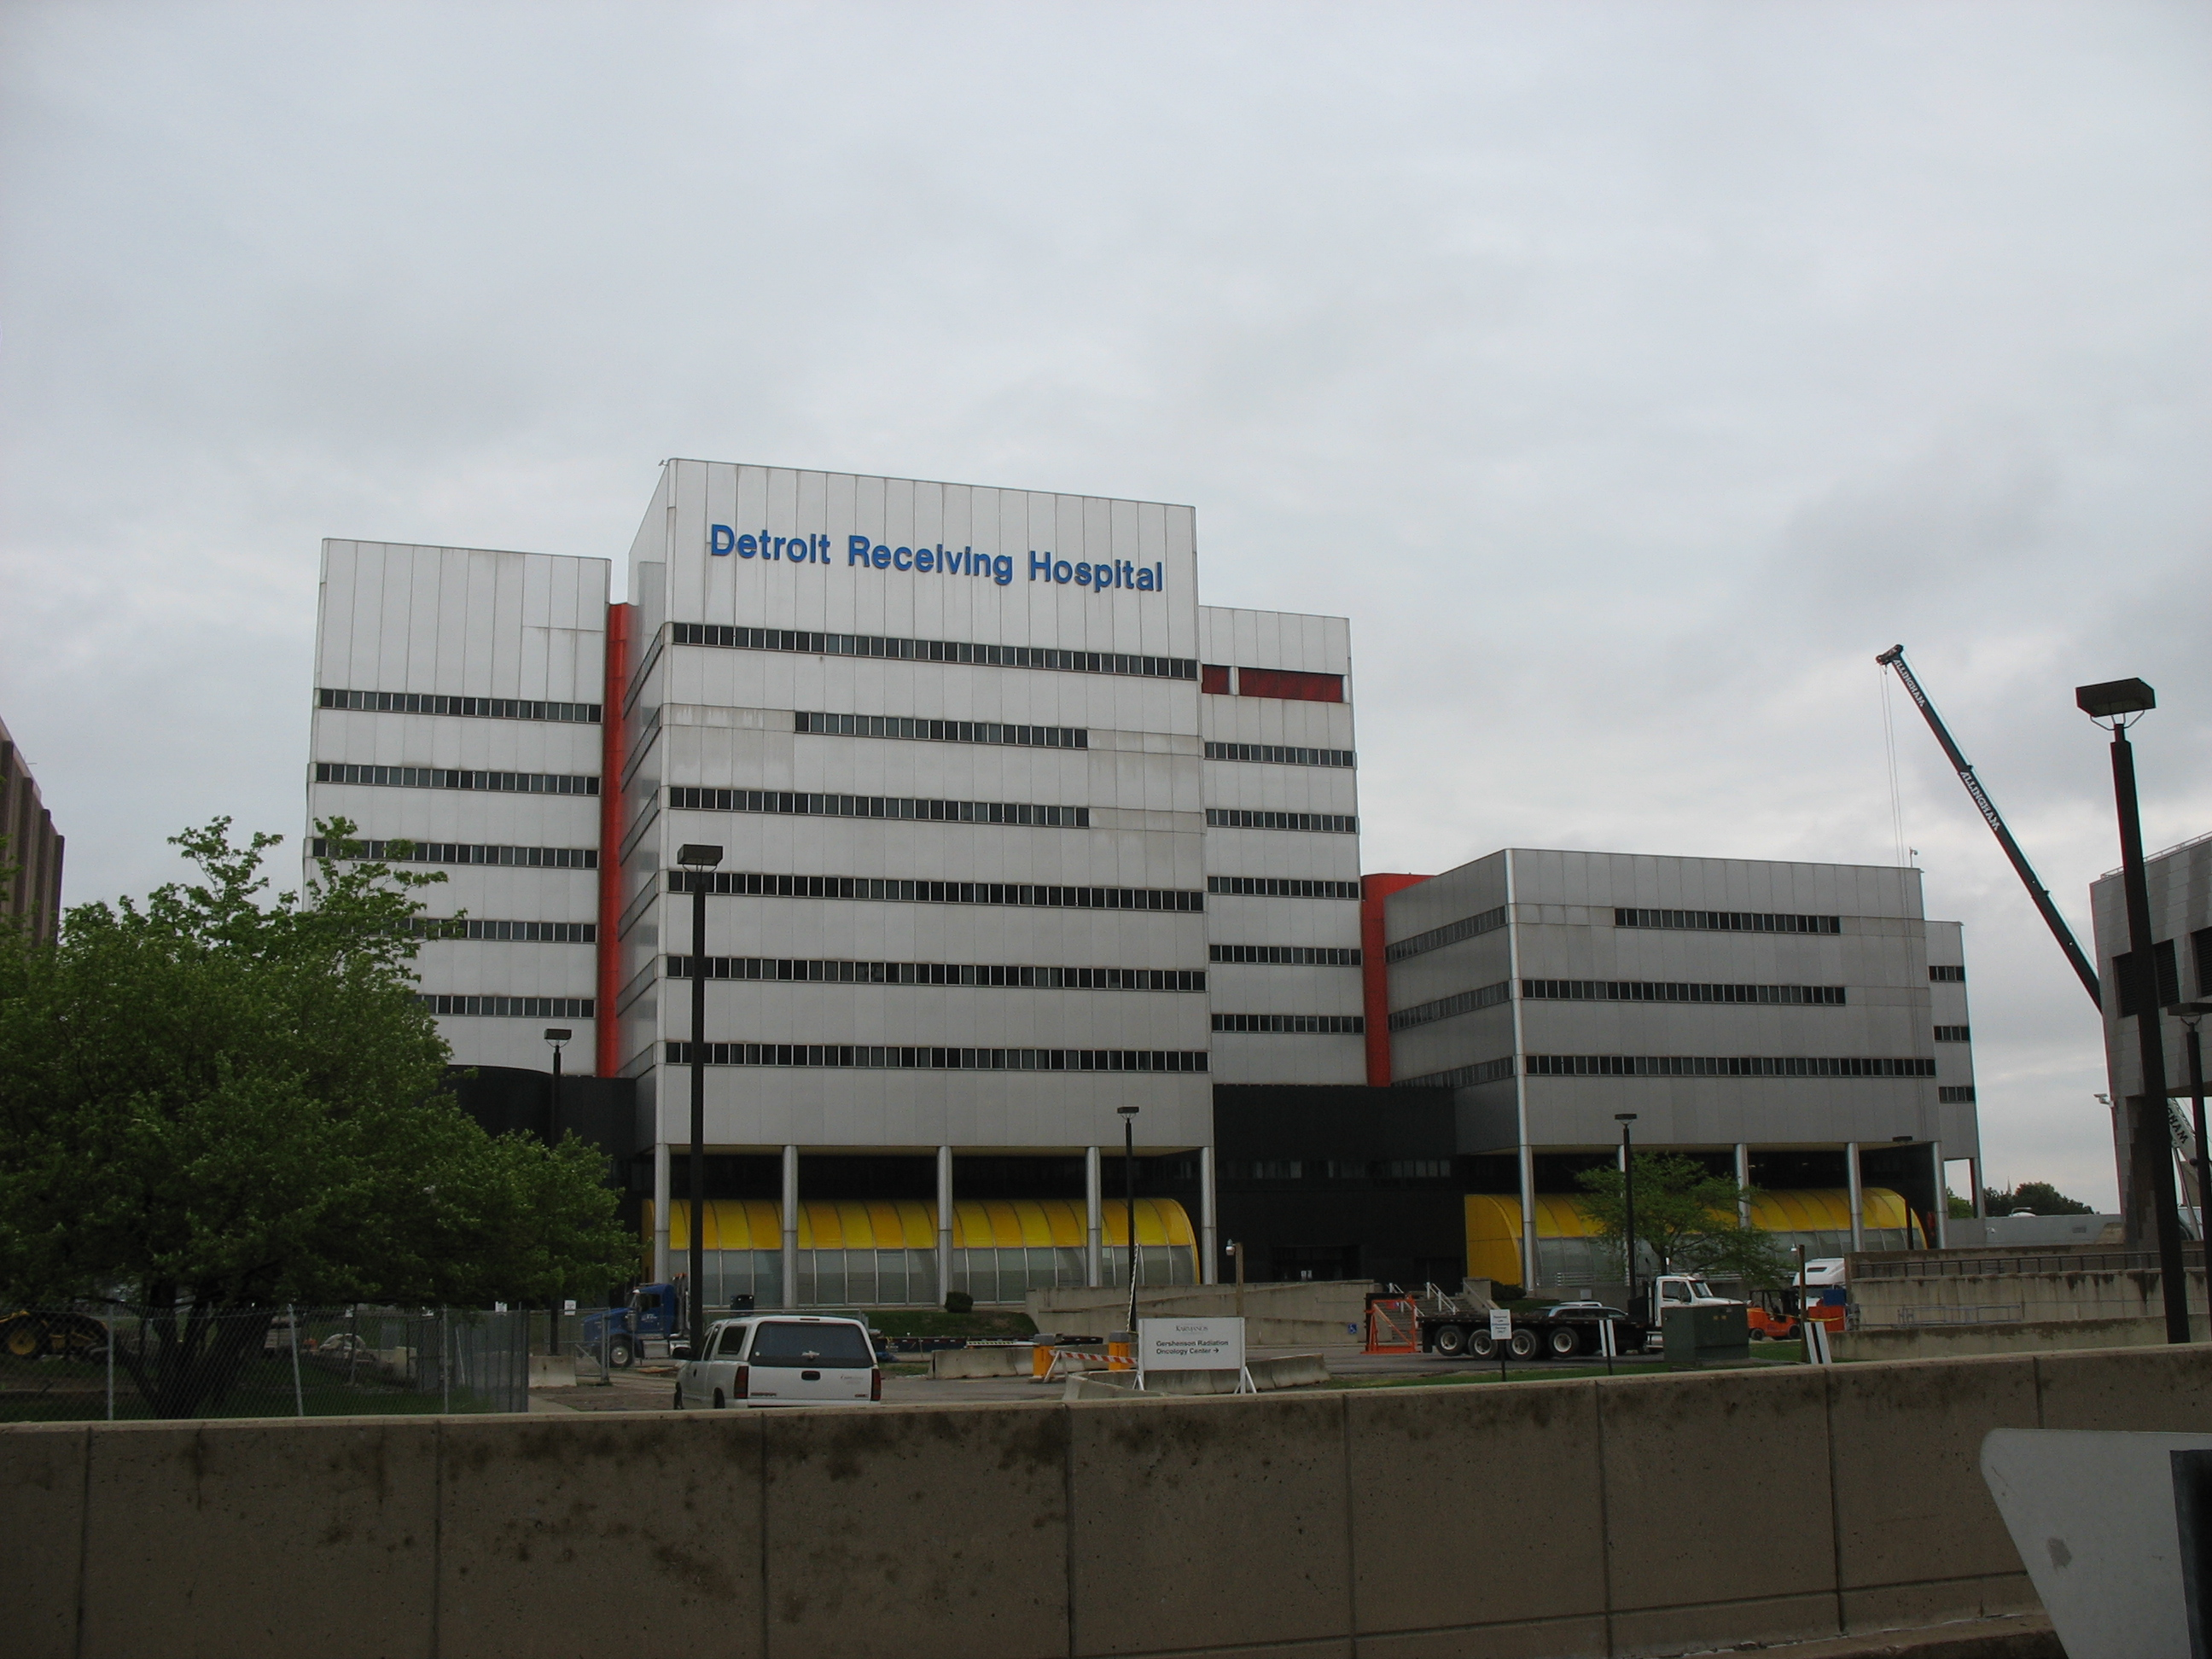 Detroit Receiving Hospital - Wikipedia